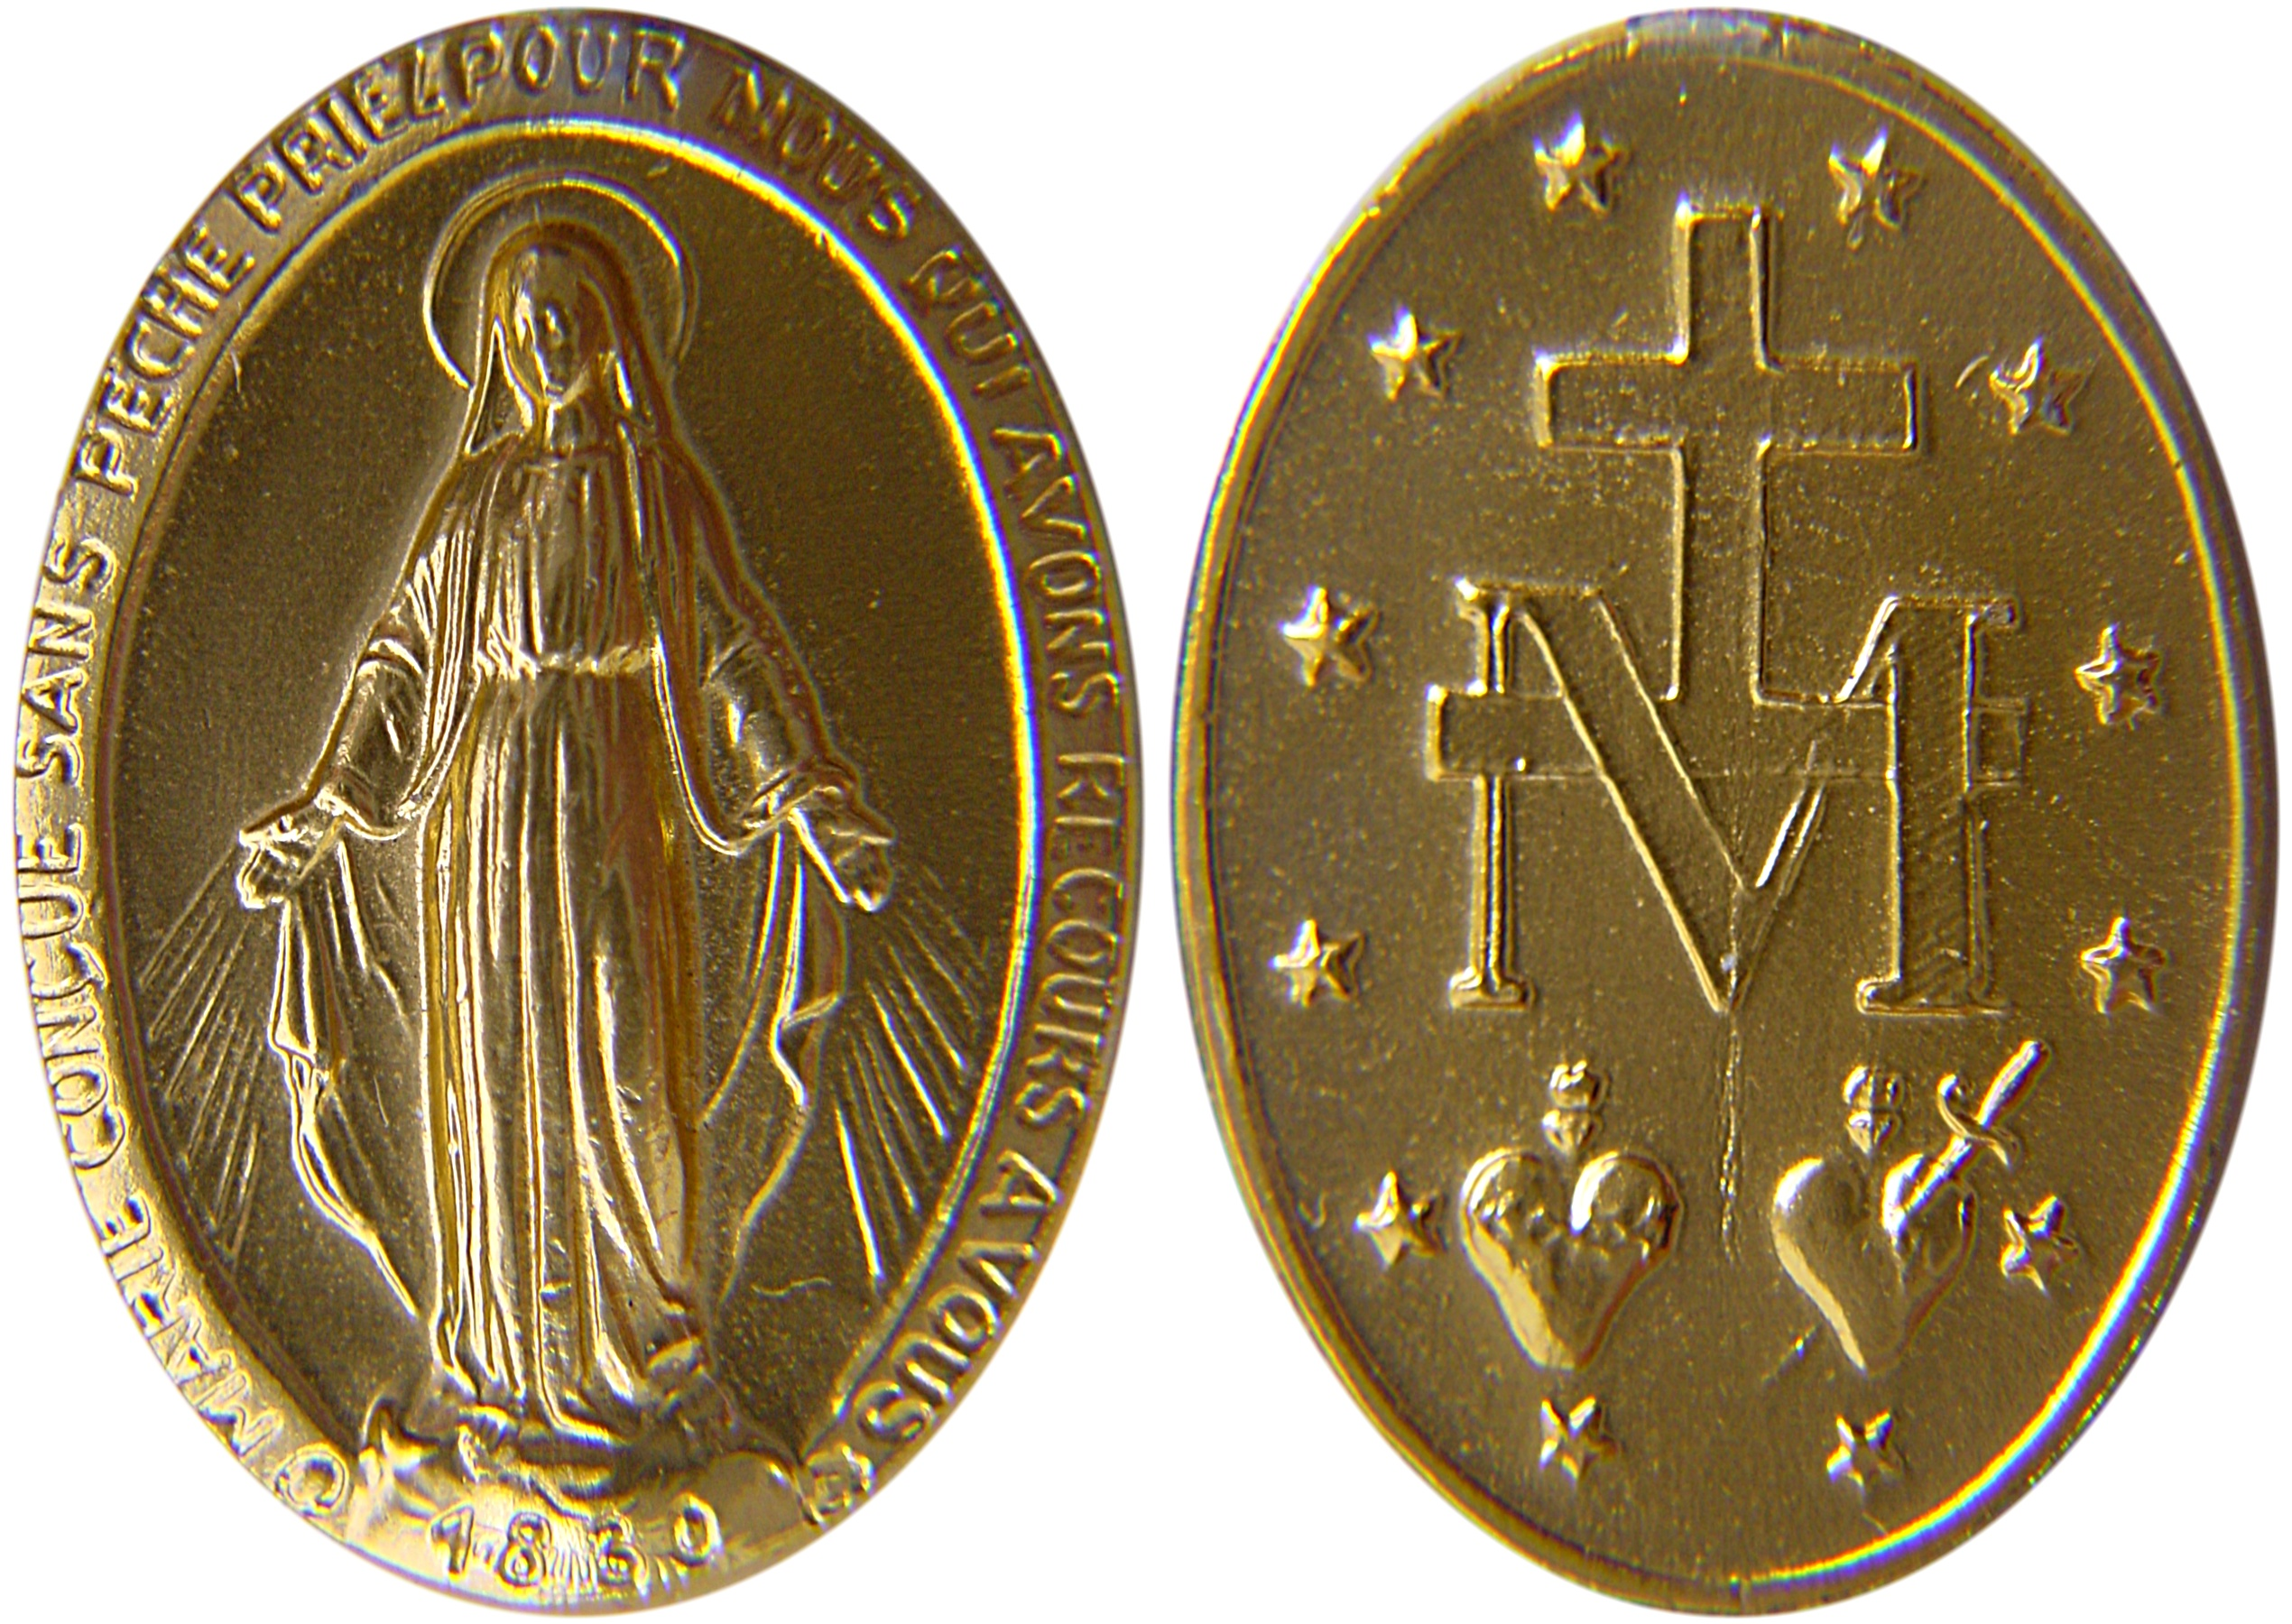 Marian Apparition of Miraculous Medal